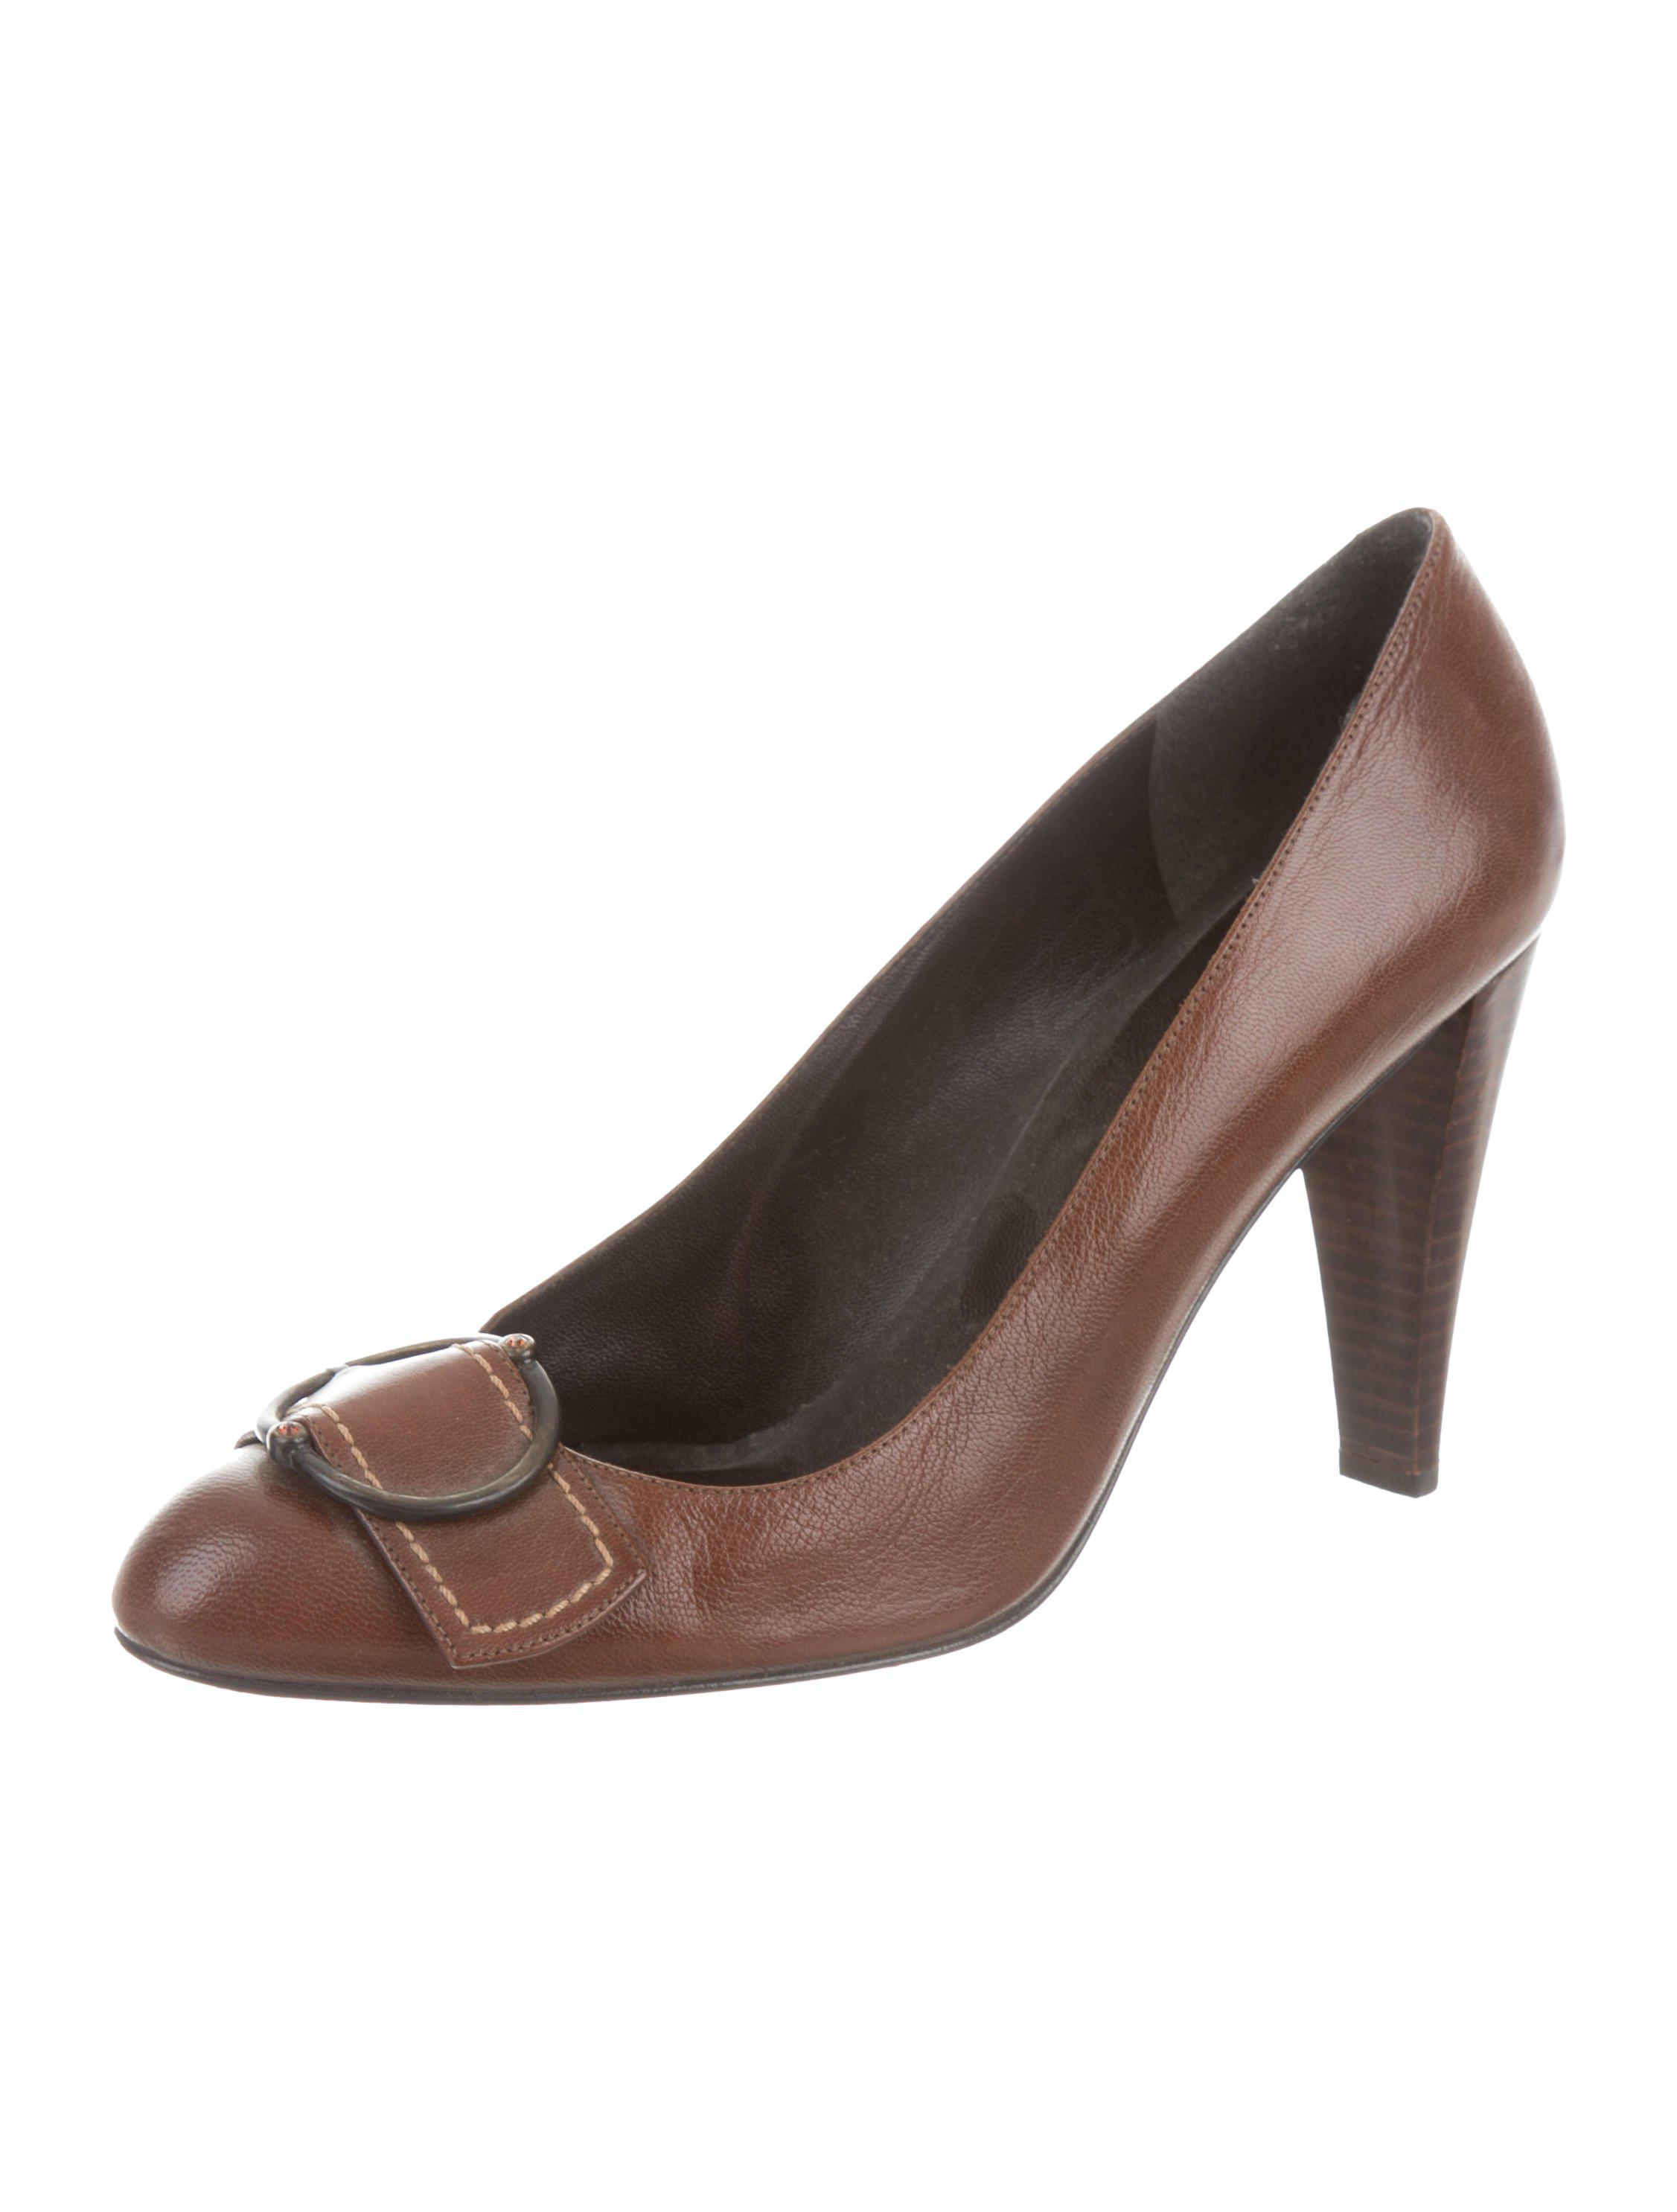 Stuart Weitzman Buckle-Accented Round-Toe Pumps discount with credit card clearance shop offer buy cheap footlocker pictures SRxIVG2c